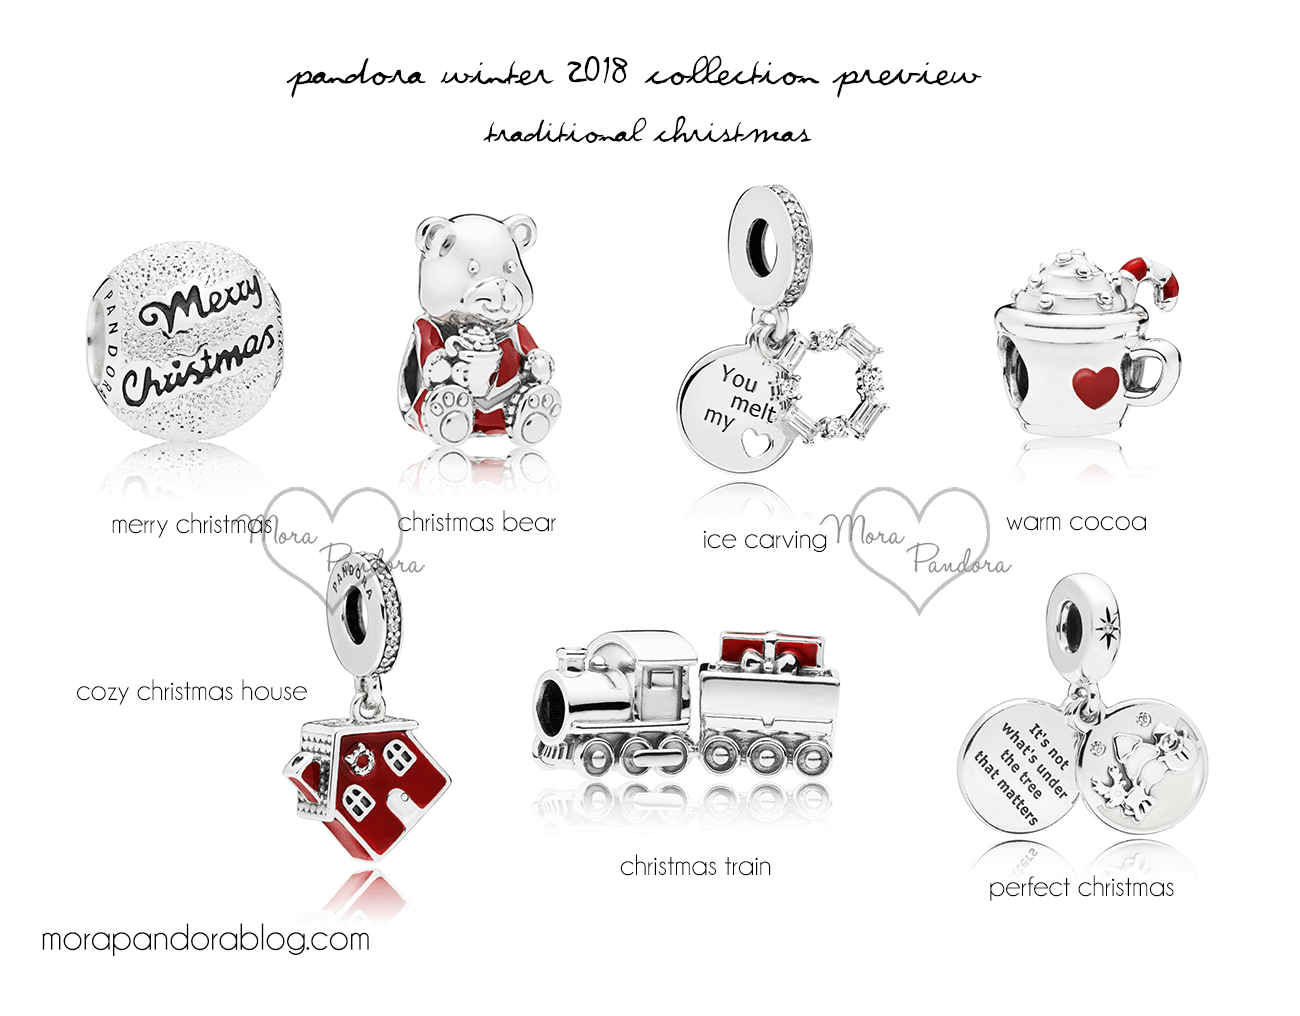 0a3bd676b Pandora Winter Collection- November 1, 2018 - Warm Cocoa €39, Cozy Christmas  House, Christmas Train €69